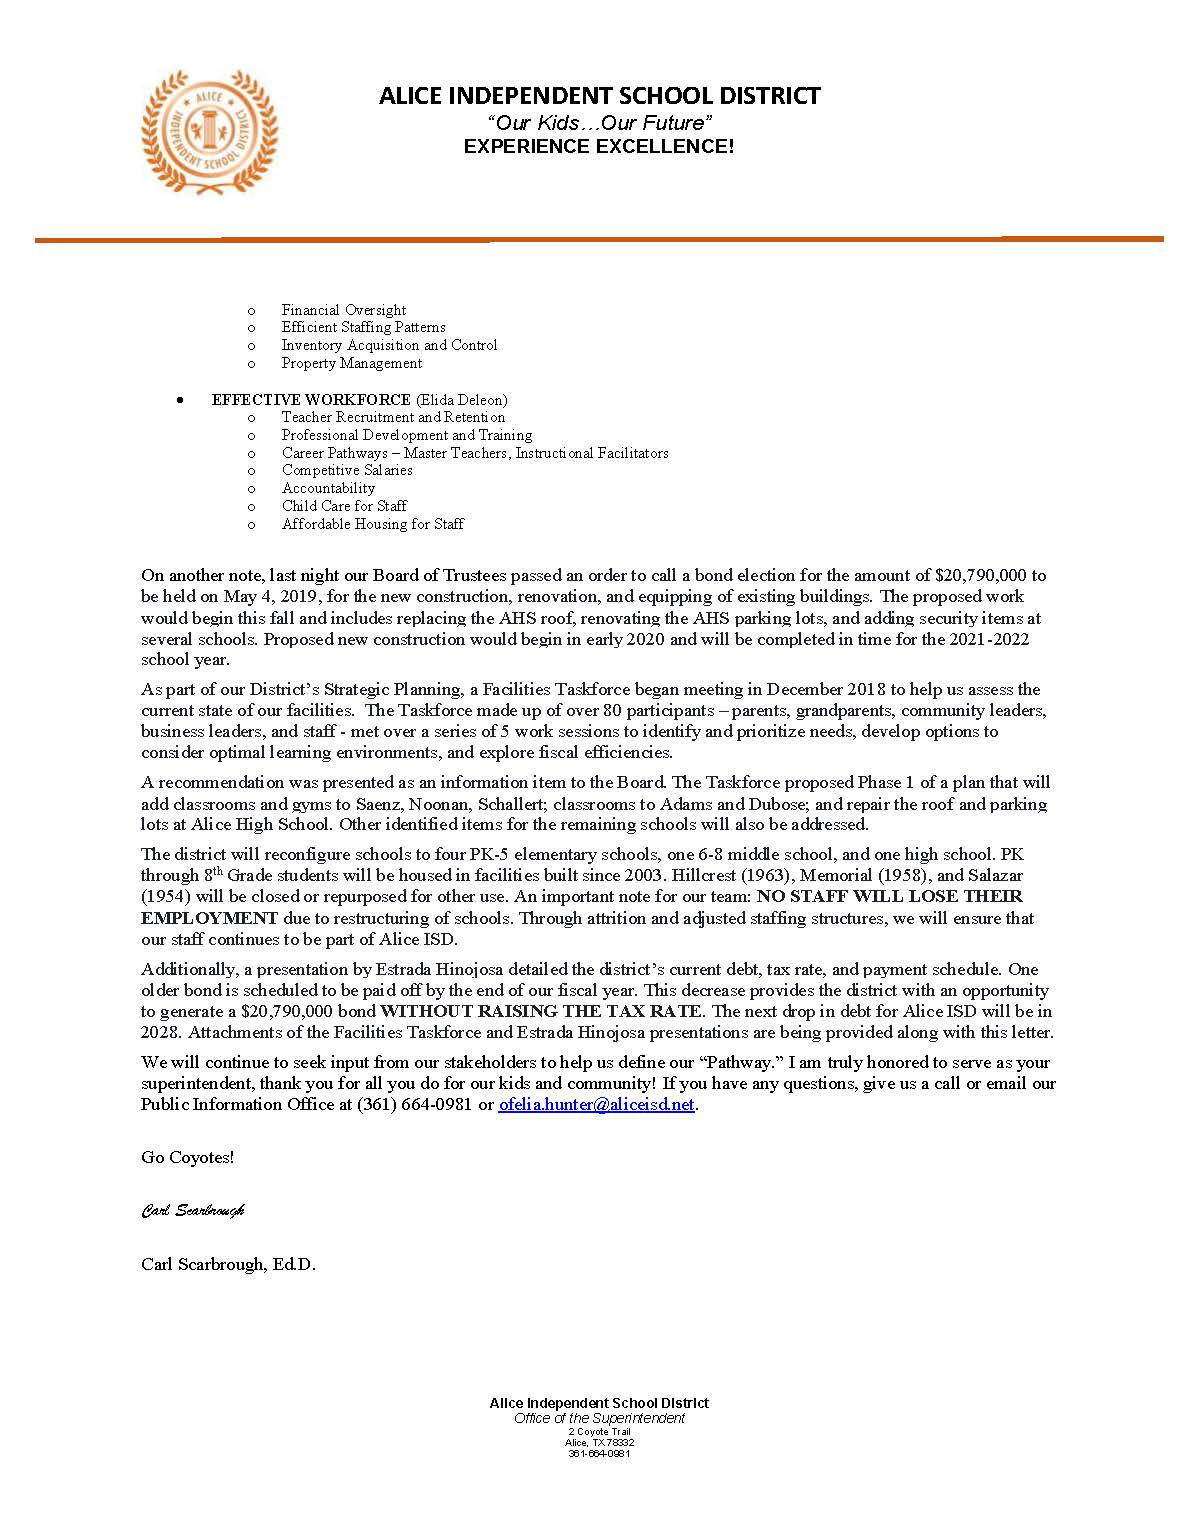 Superintendent letter to Staff and Community